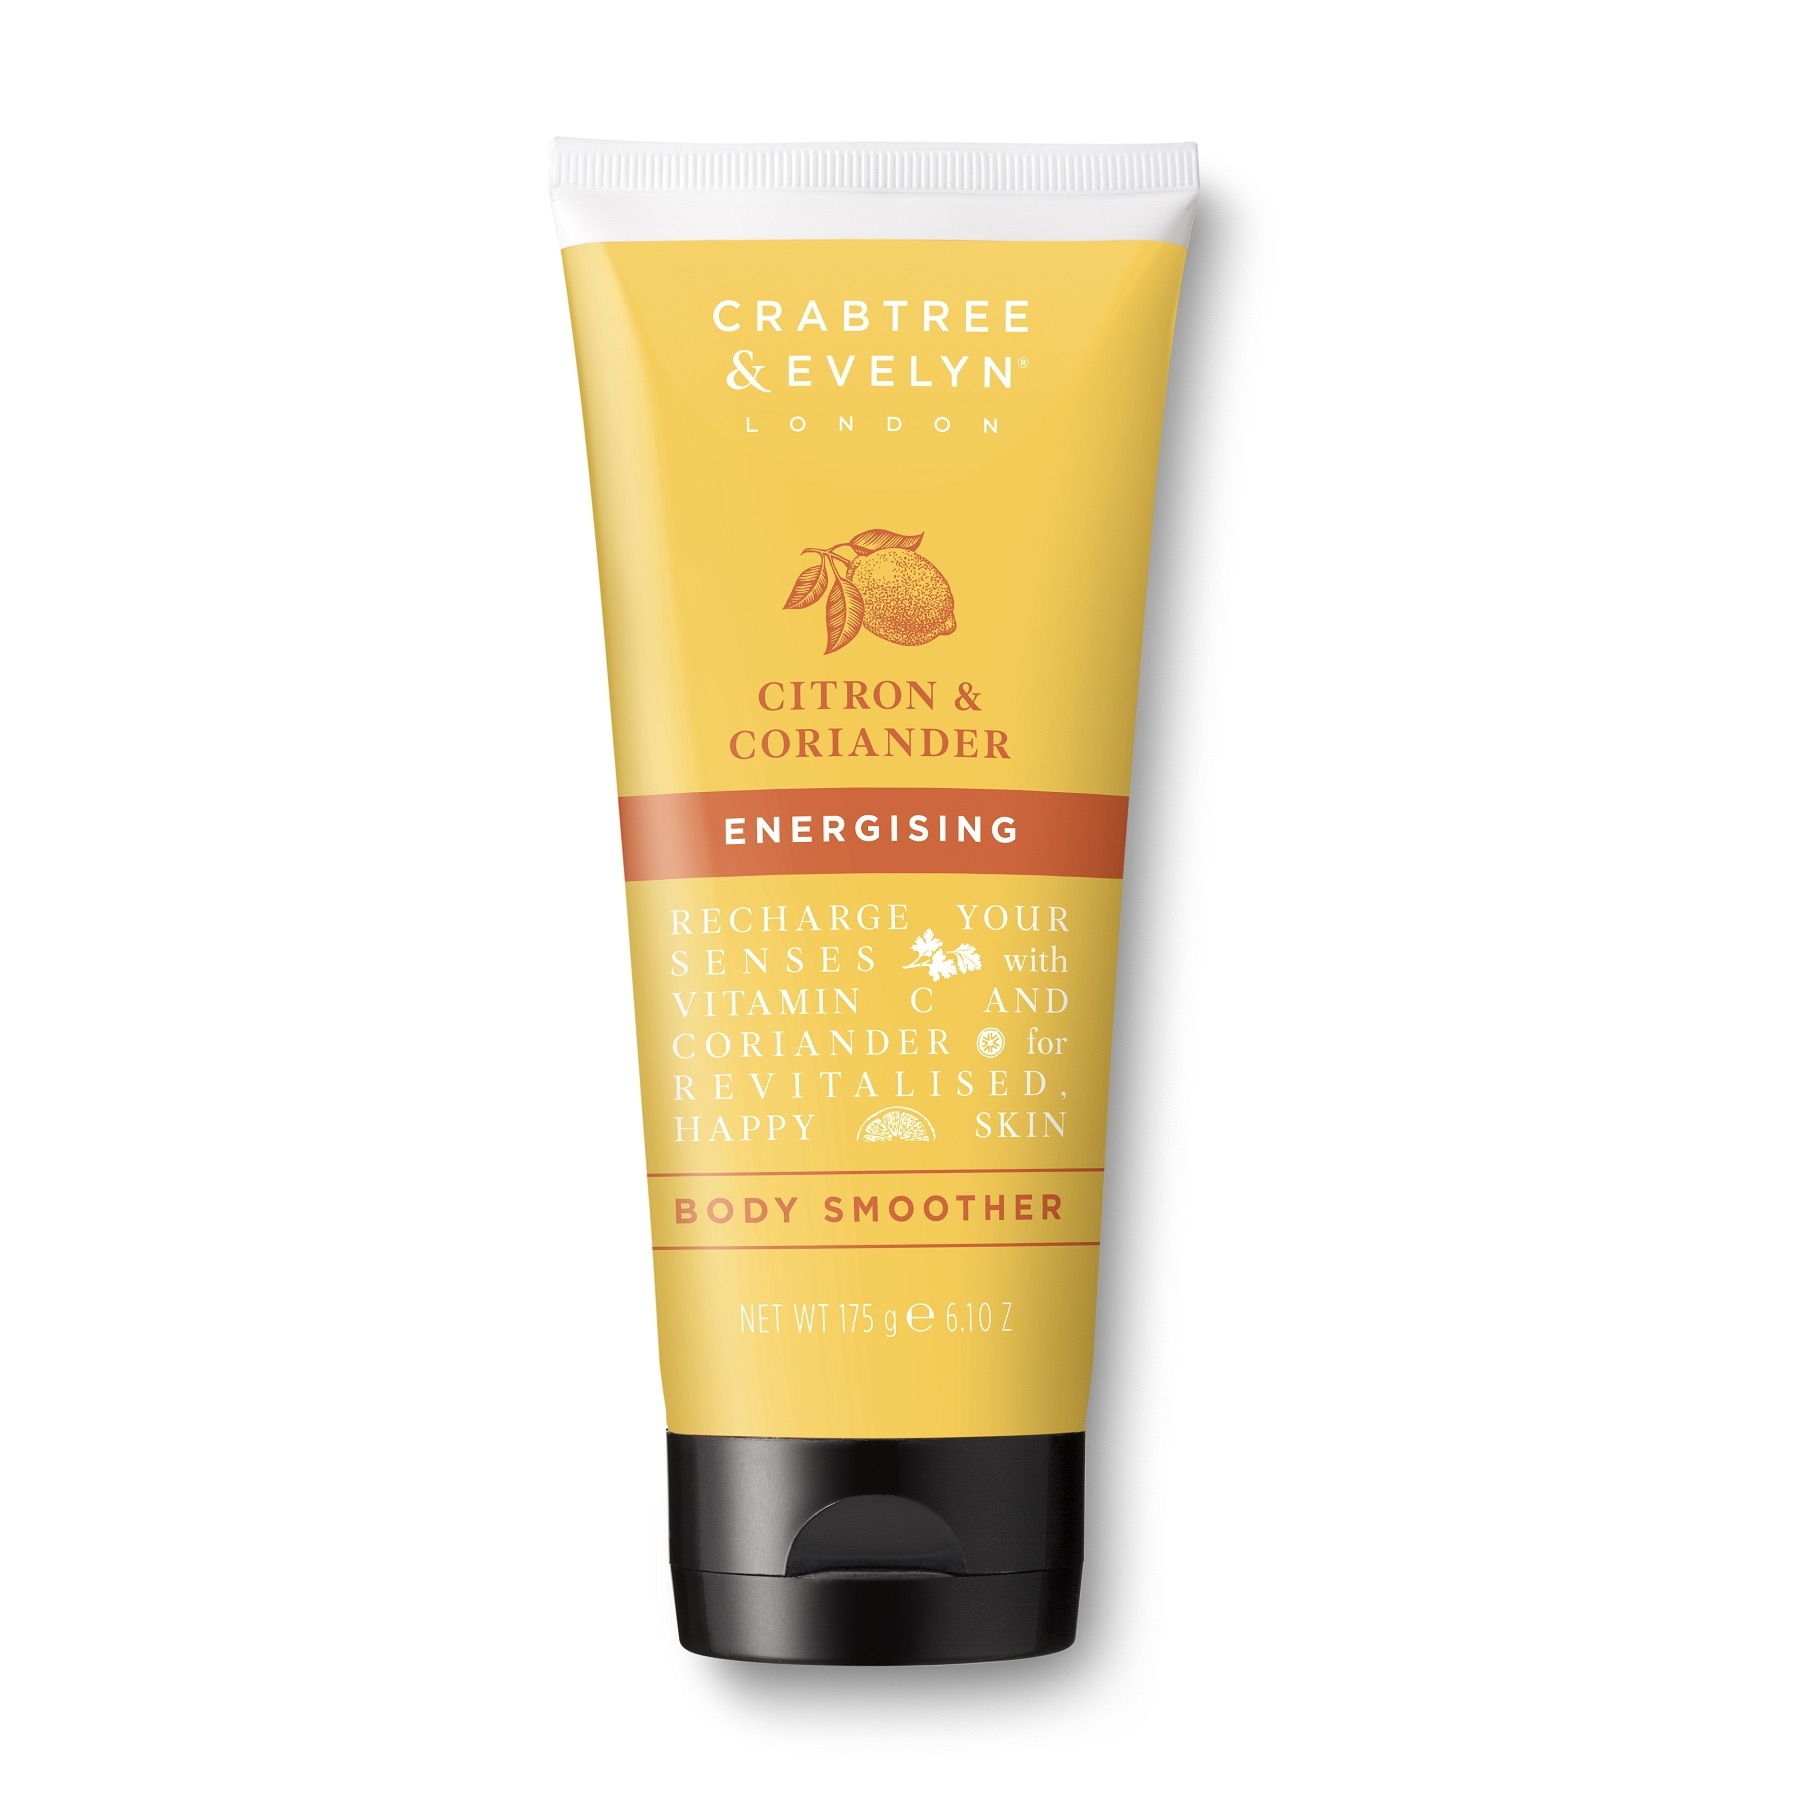 Crabtree & Evelyn Citron & Coriander Body Smoother 175g